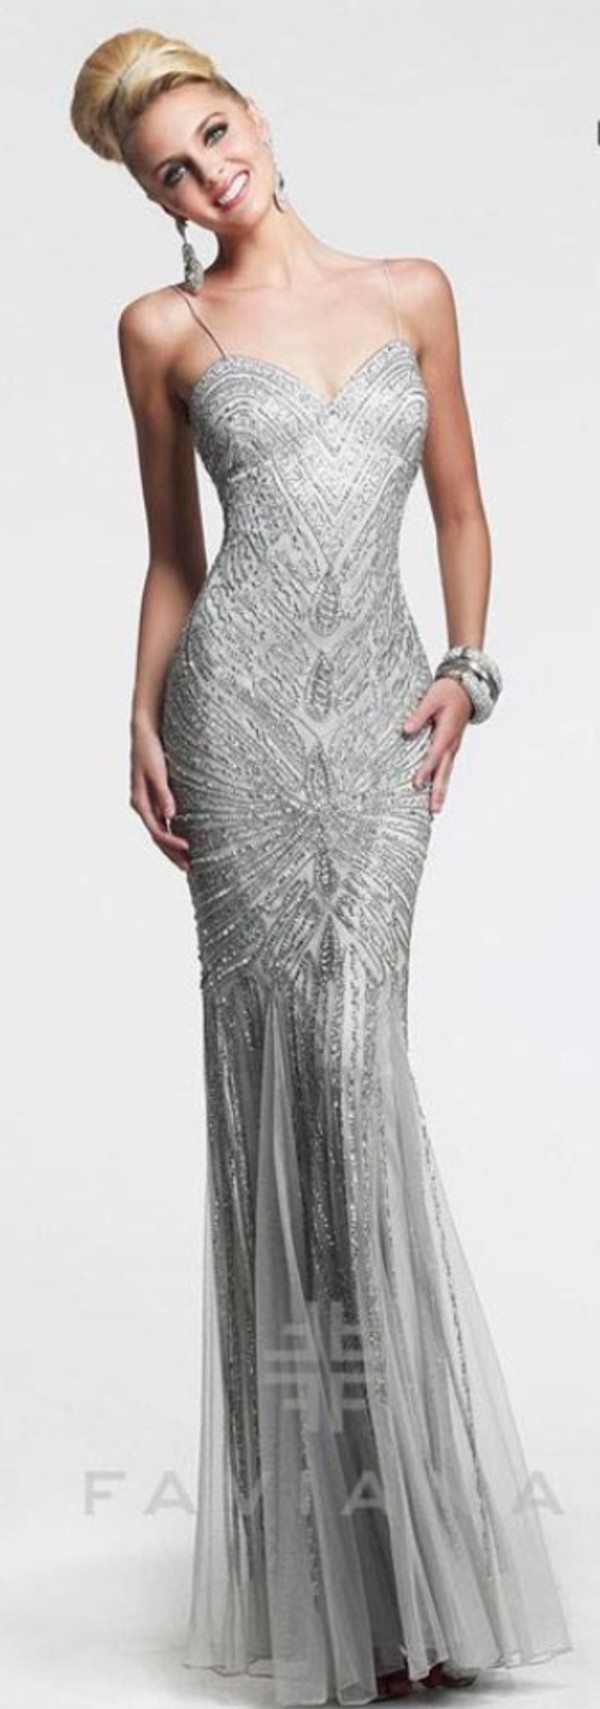 prom dress silver homecoming dress dress